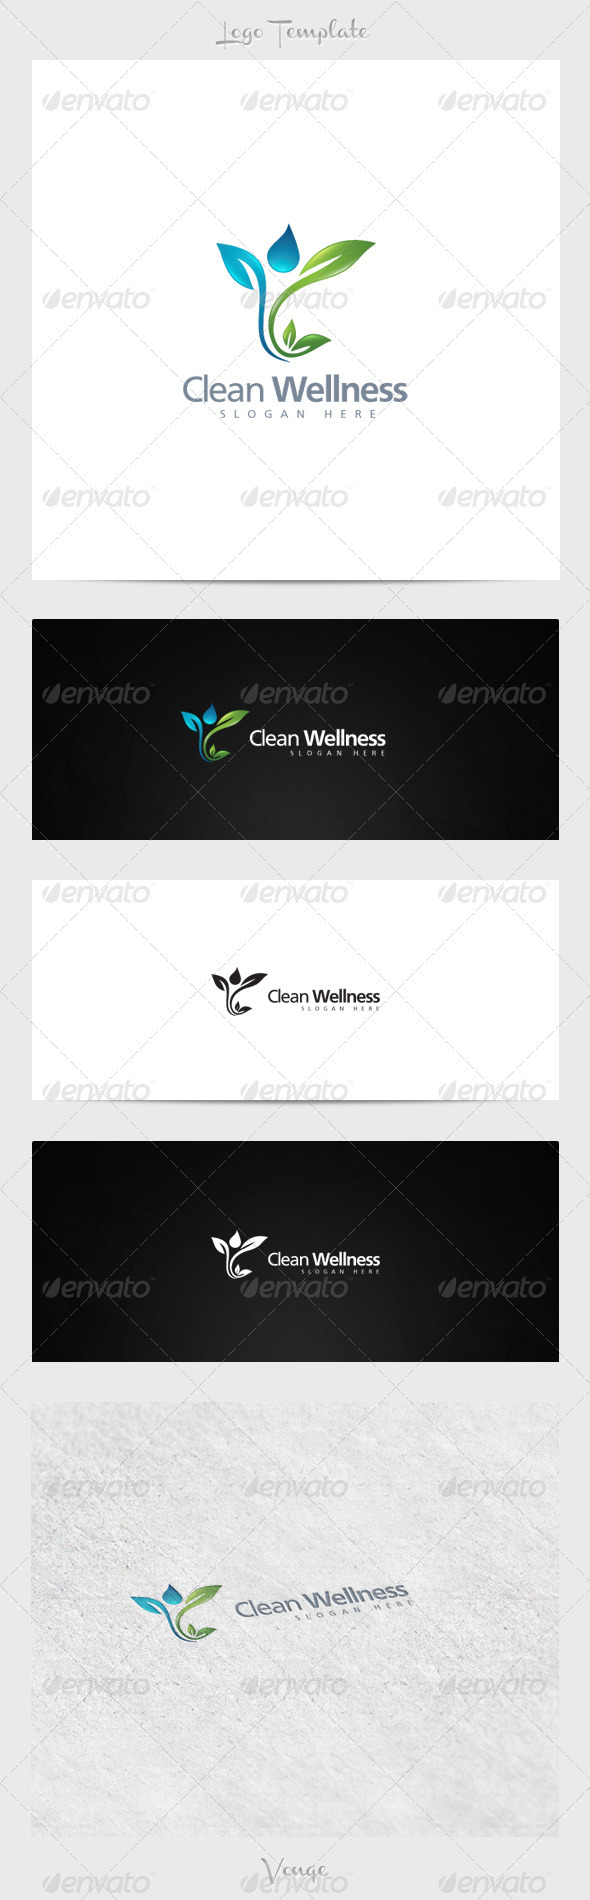 Clean Wellness - Nature Logo Templates